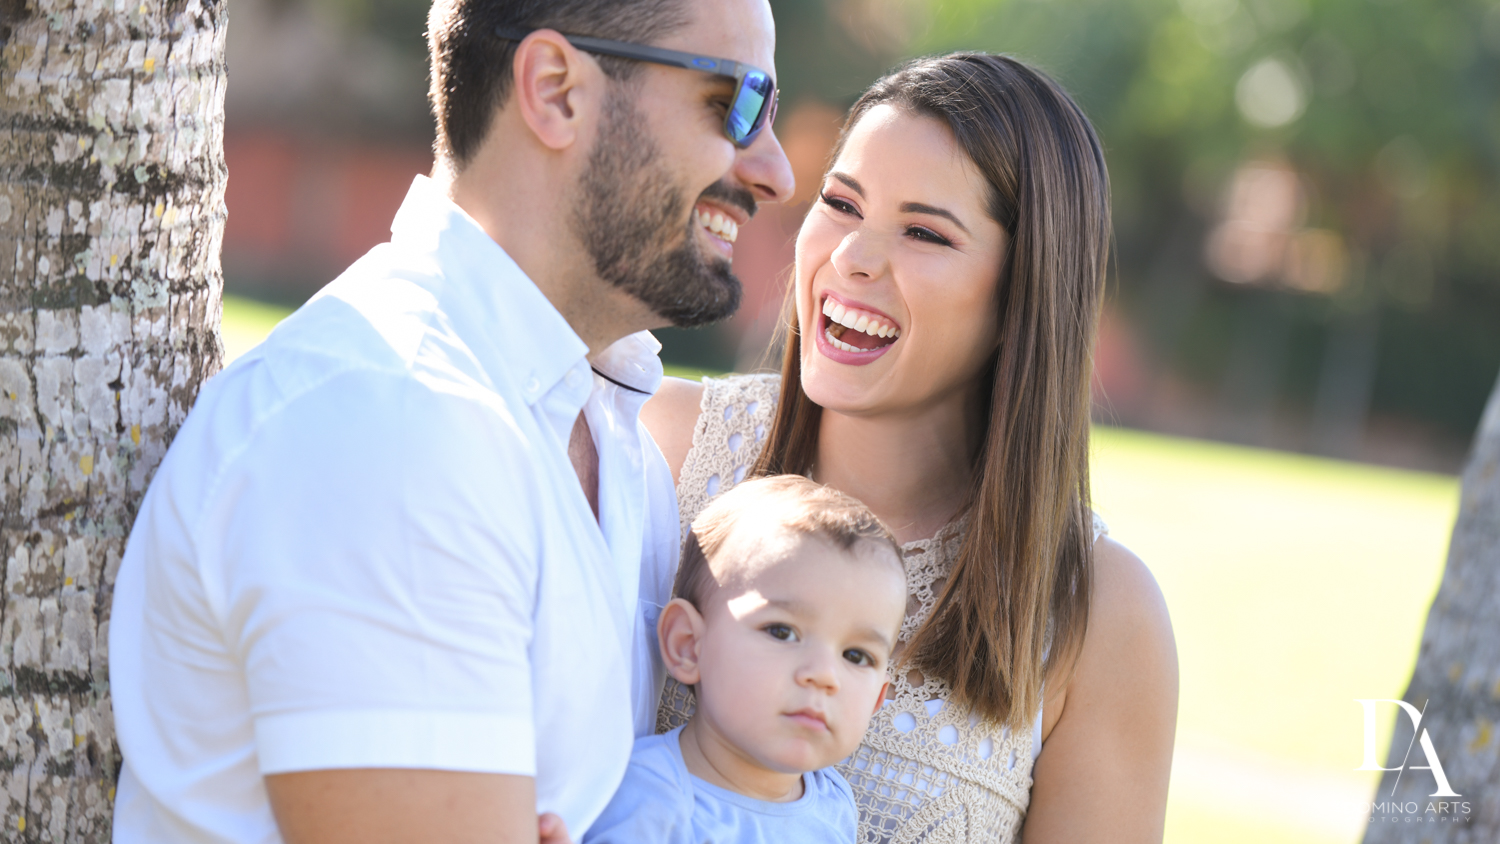 happy family portraits at Urban baby Photo Session in Coral Gables by Domino Arts Photography